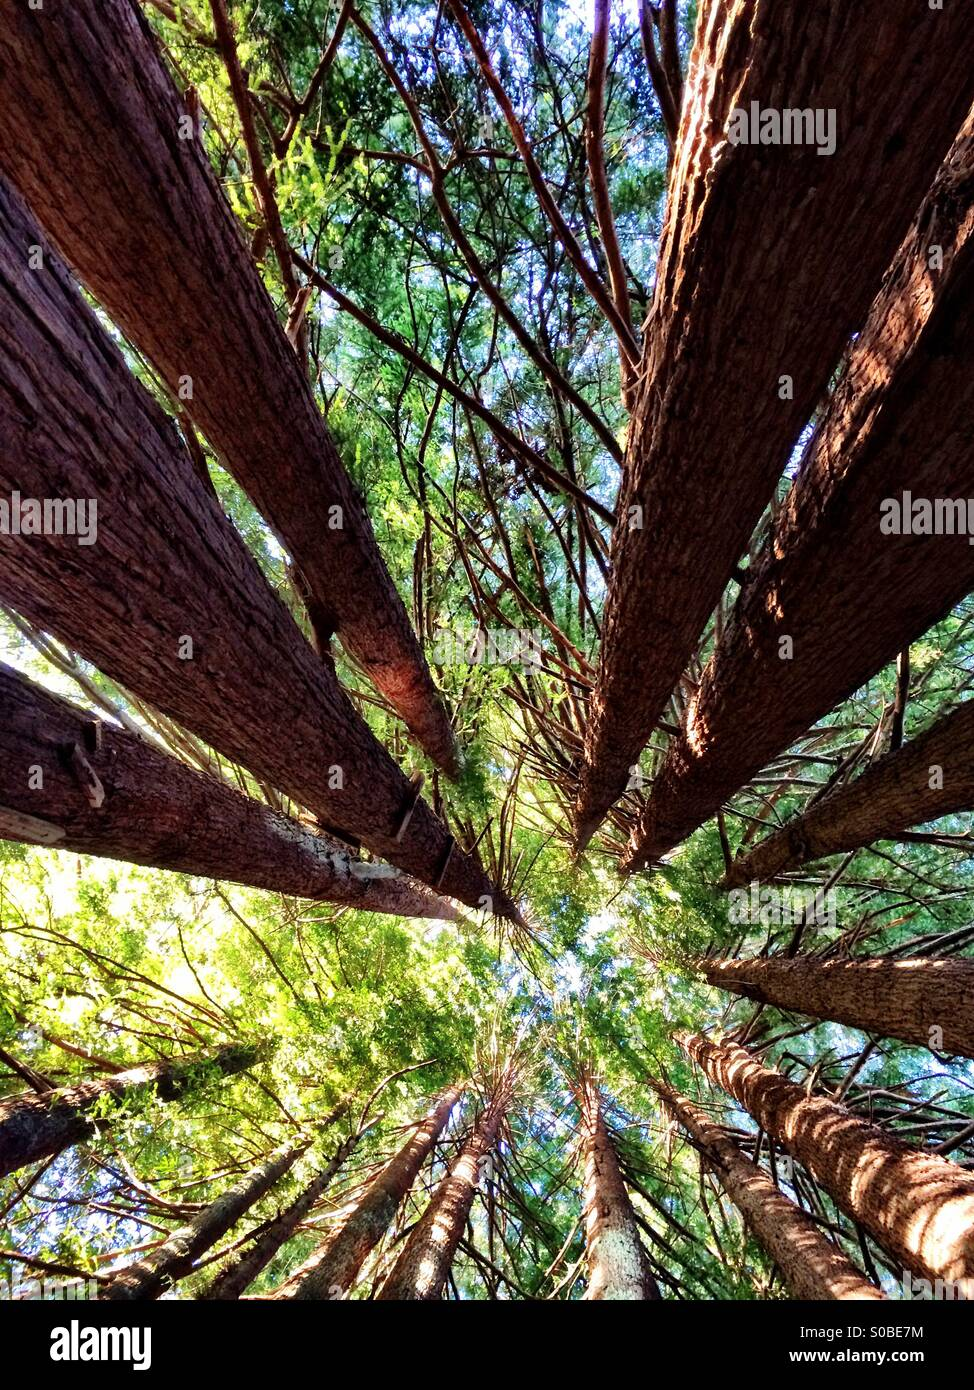 Up in the trees. - Stock Image